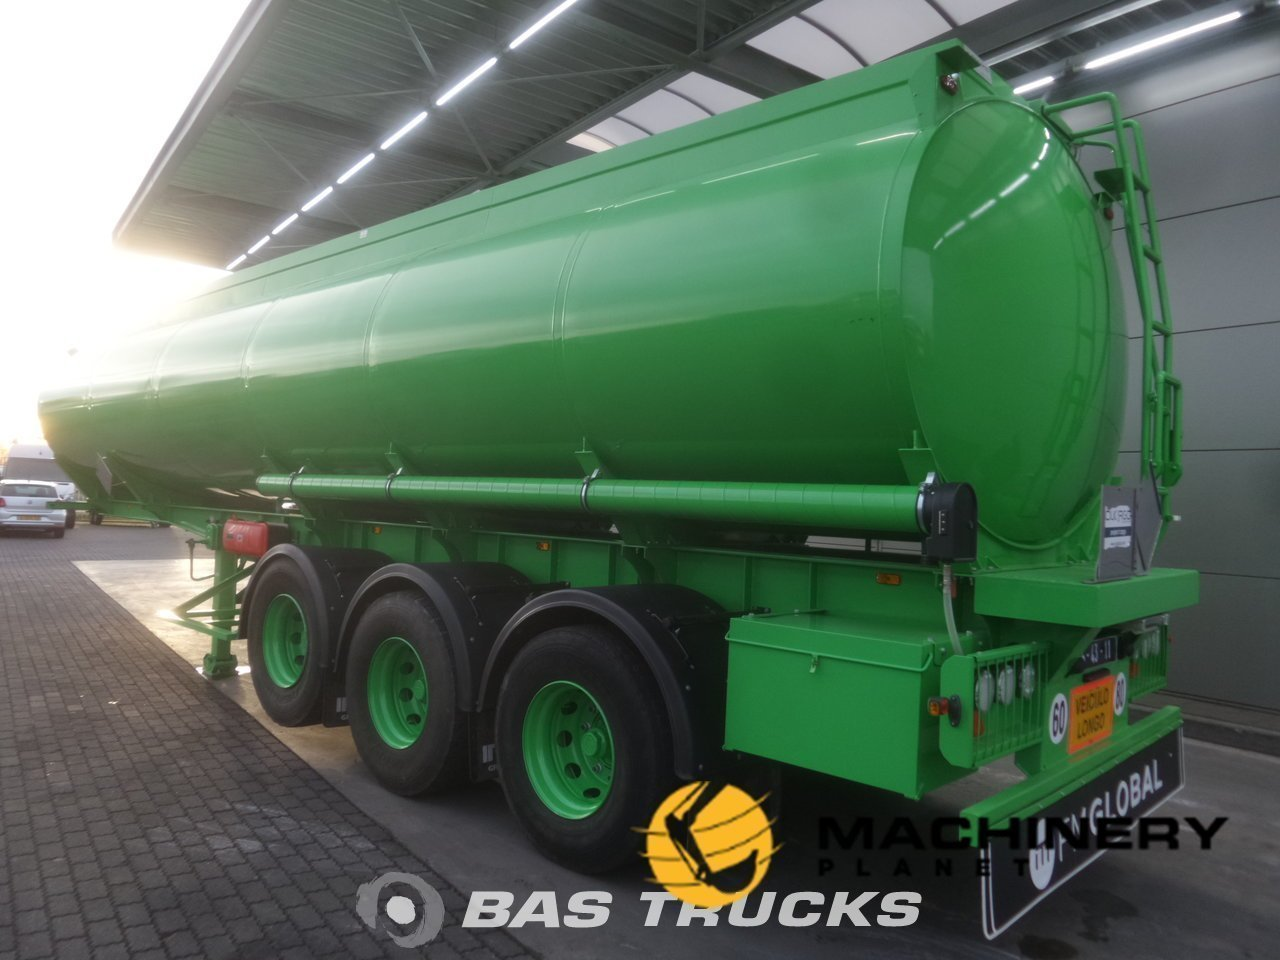 New-Semi-trailer-Joluso-NEW-UNUSED-35000-Ltr--2--Fueltank-SXCI-3DPB-105-00-3-Axels_90033_1-1554199059507_5ca332137bbfa-1.jpg